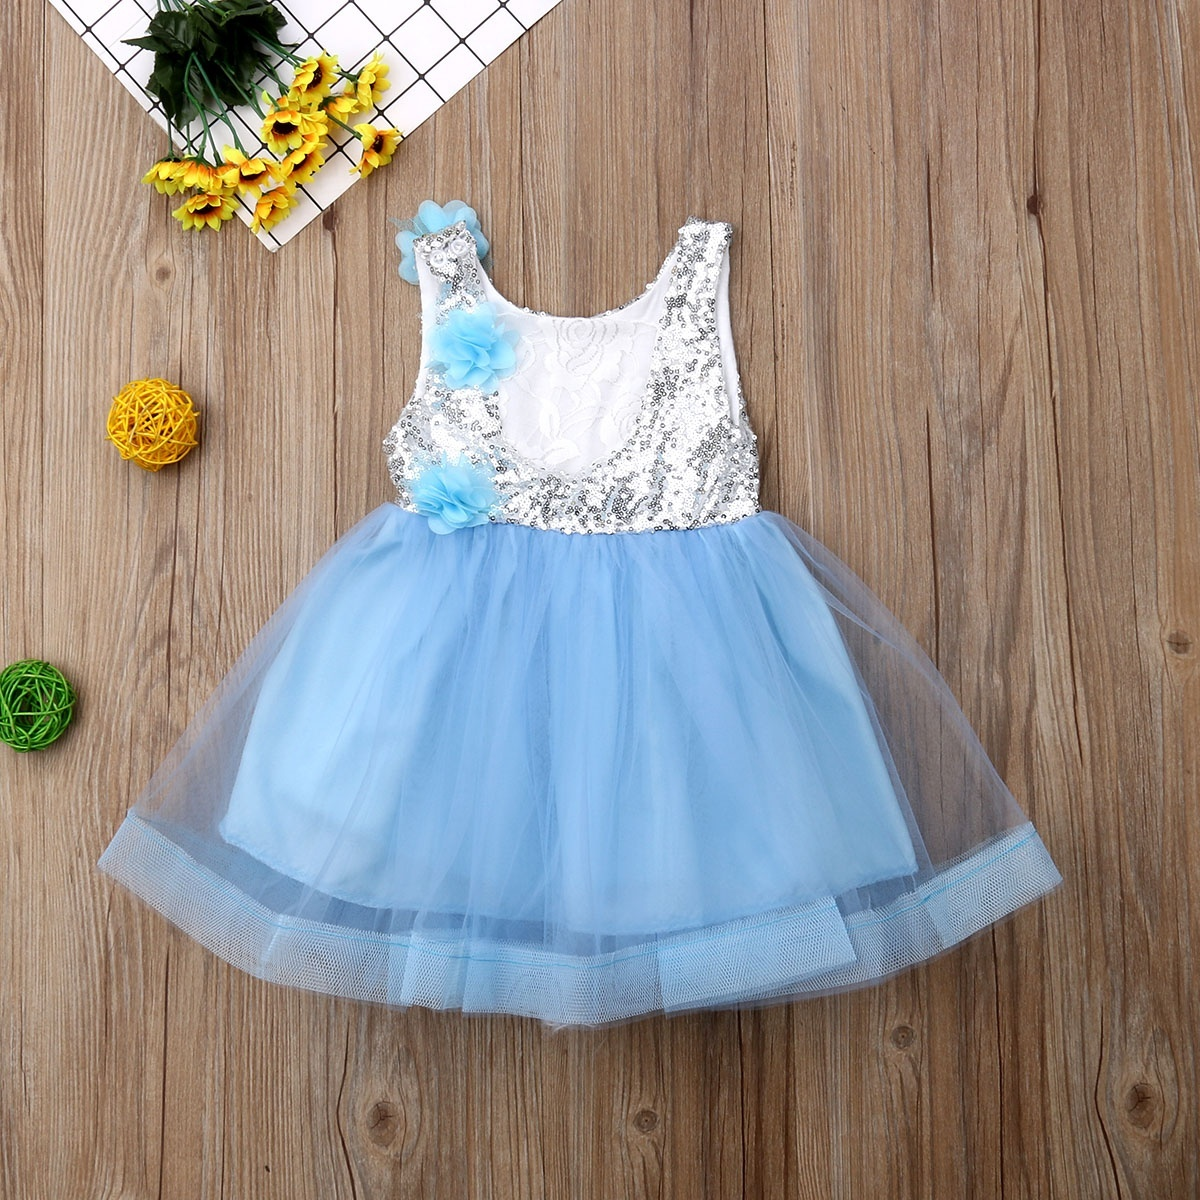 Flower Girl Kids Tutu Dress Sequins Princess Party Wedding Bridesmaid Tulle Gown